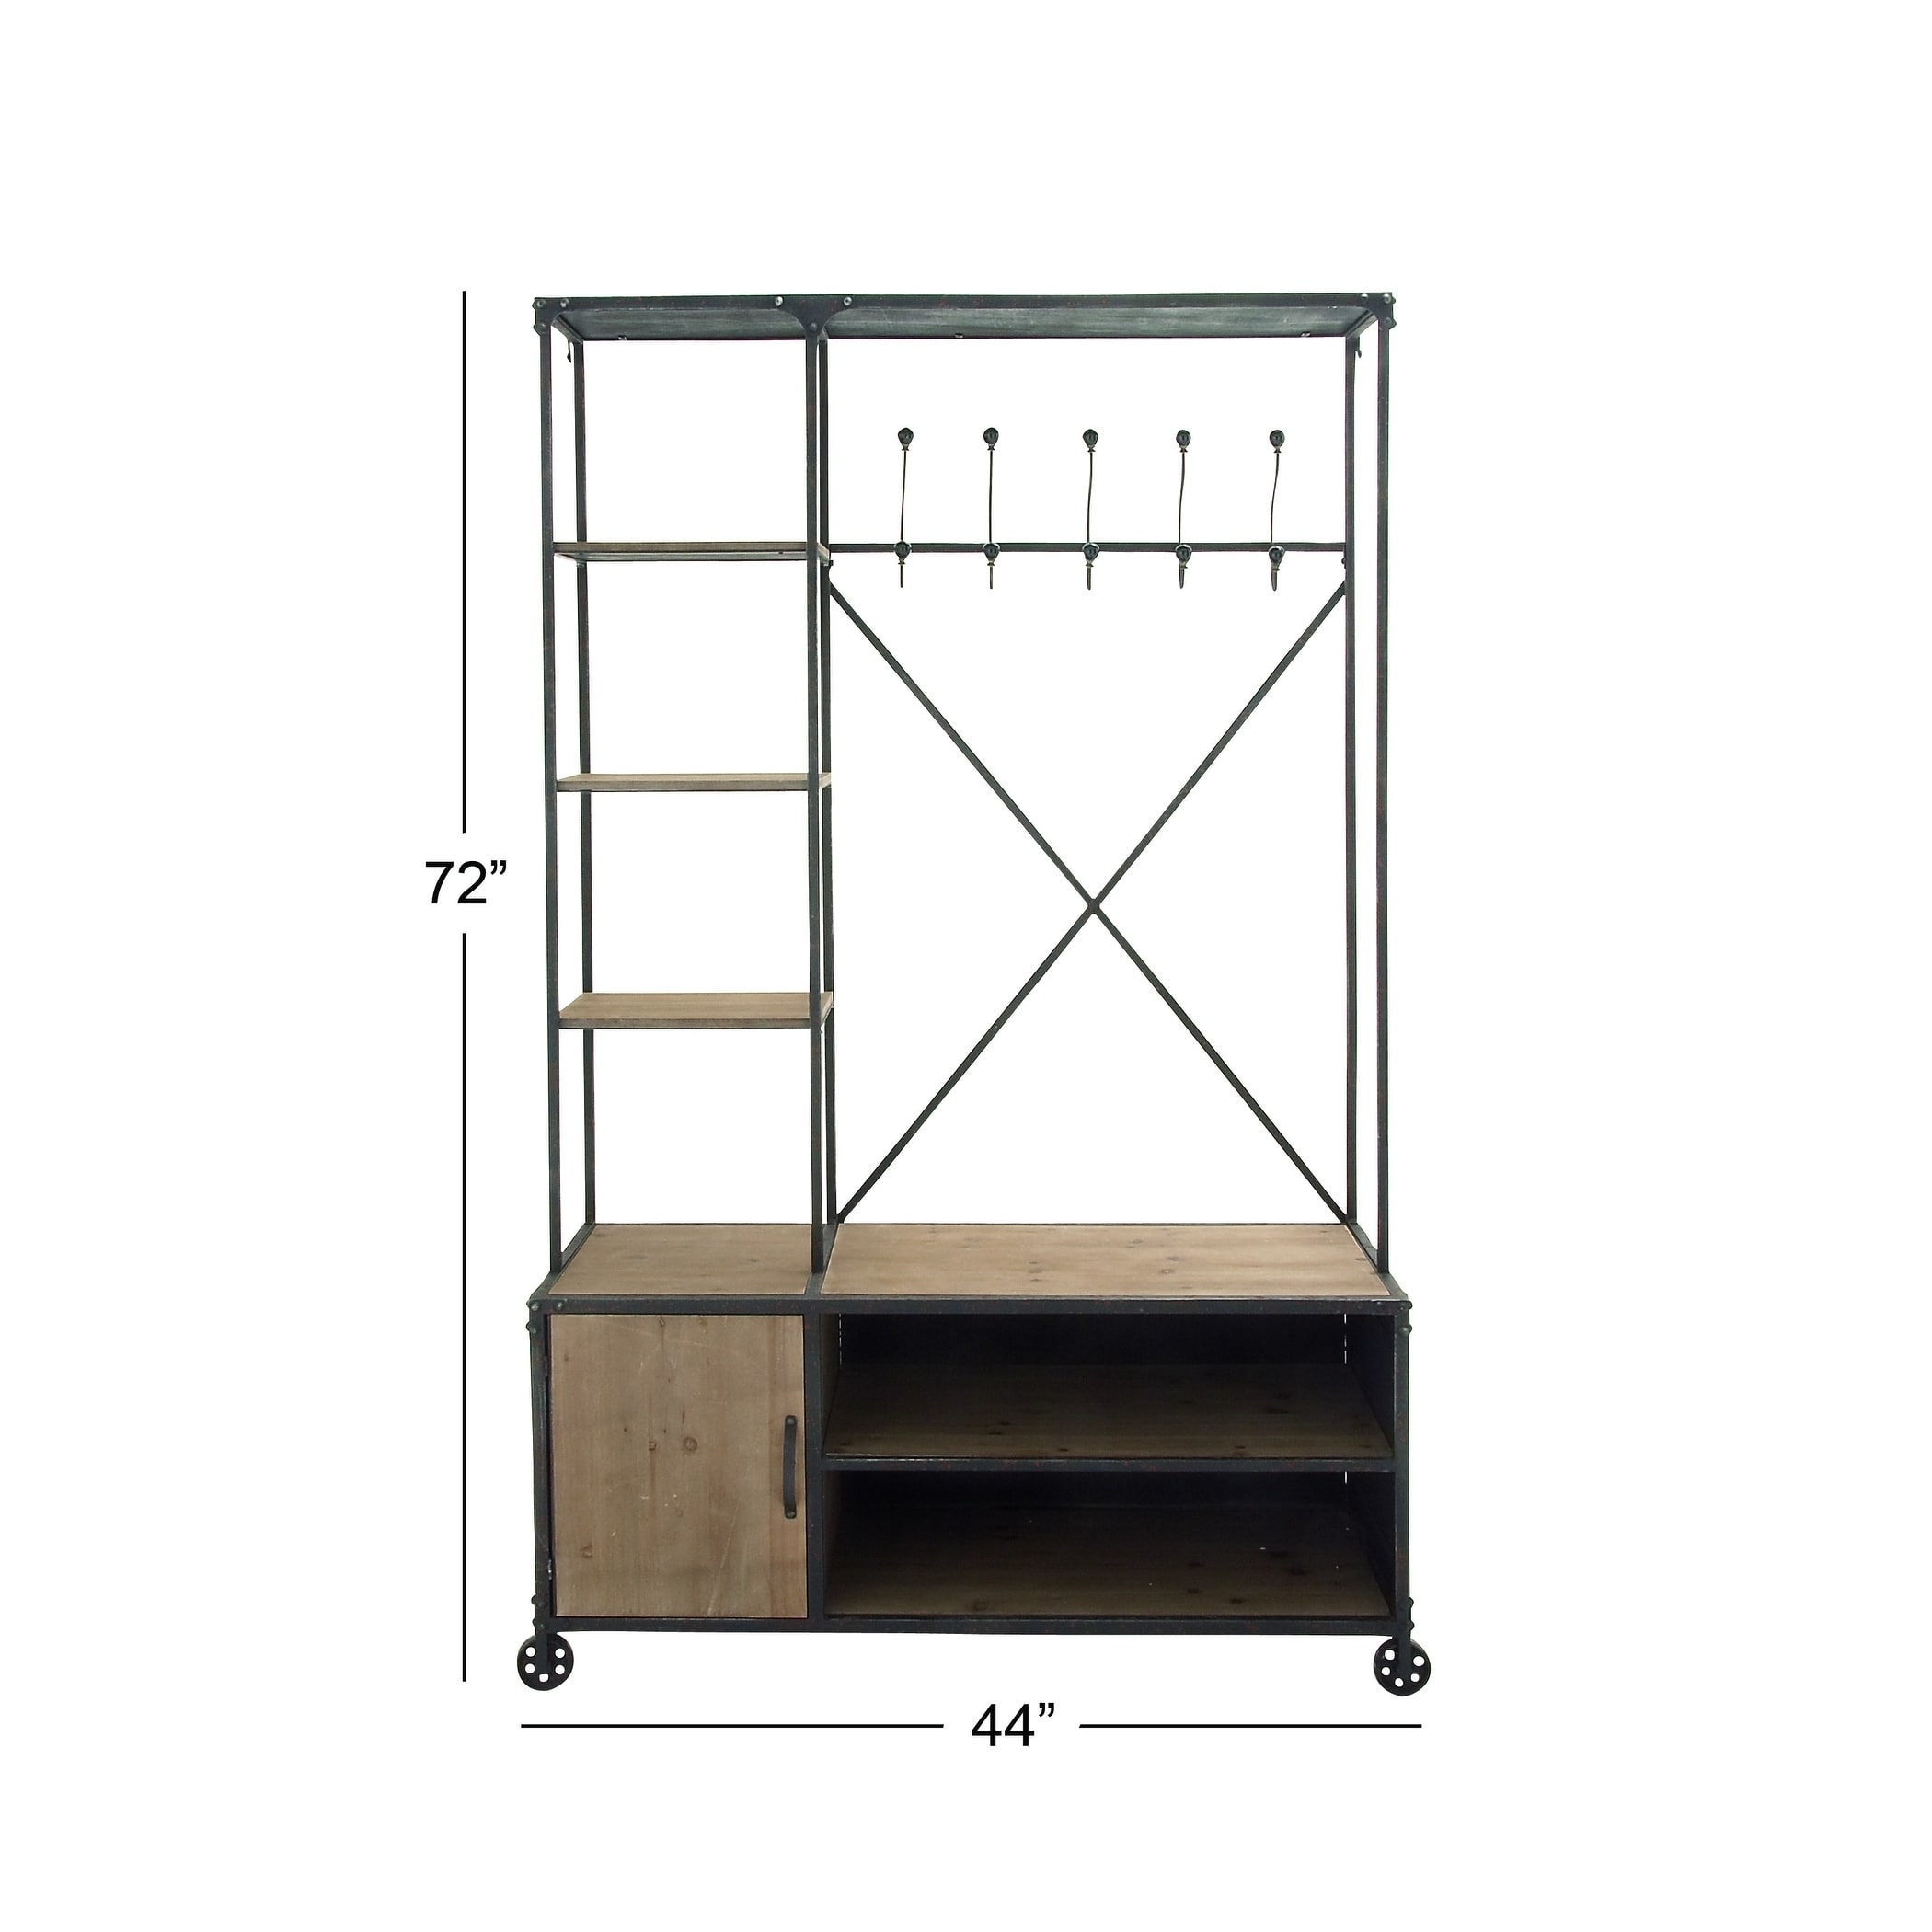 Industrial Clothing Rack Decmode Industrial 72 X 44 Inch Distressed Metal And Wood Multi Tiered Clothes Rack Chesnut